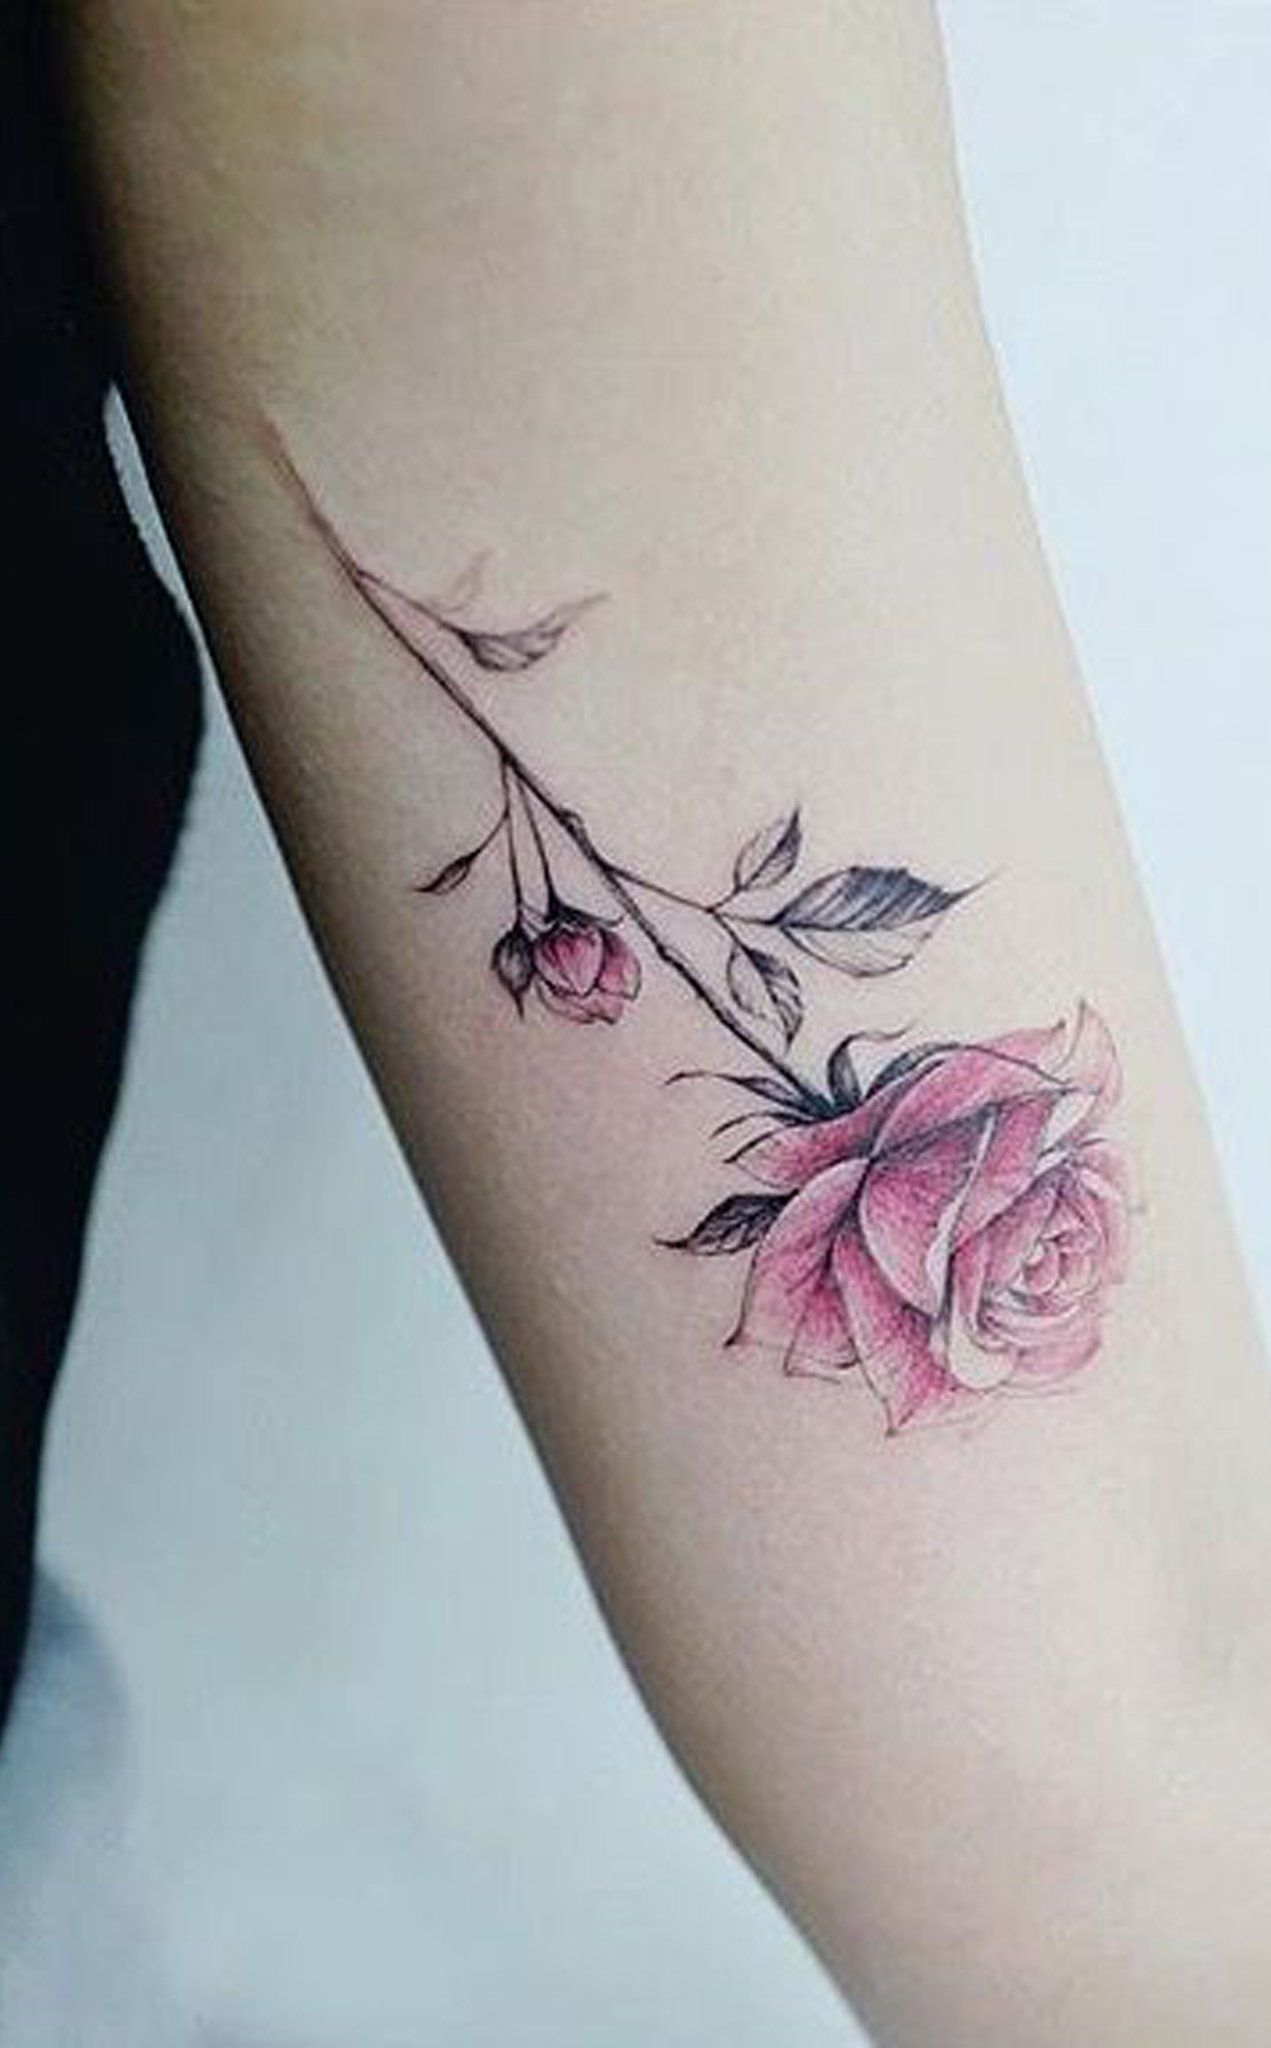 Watercolor Rose Arm Tattoo Ideas for Women Small